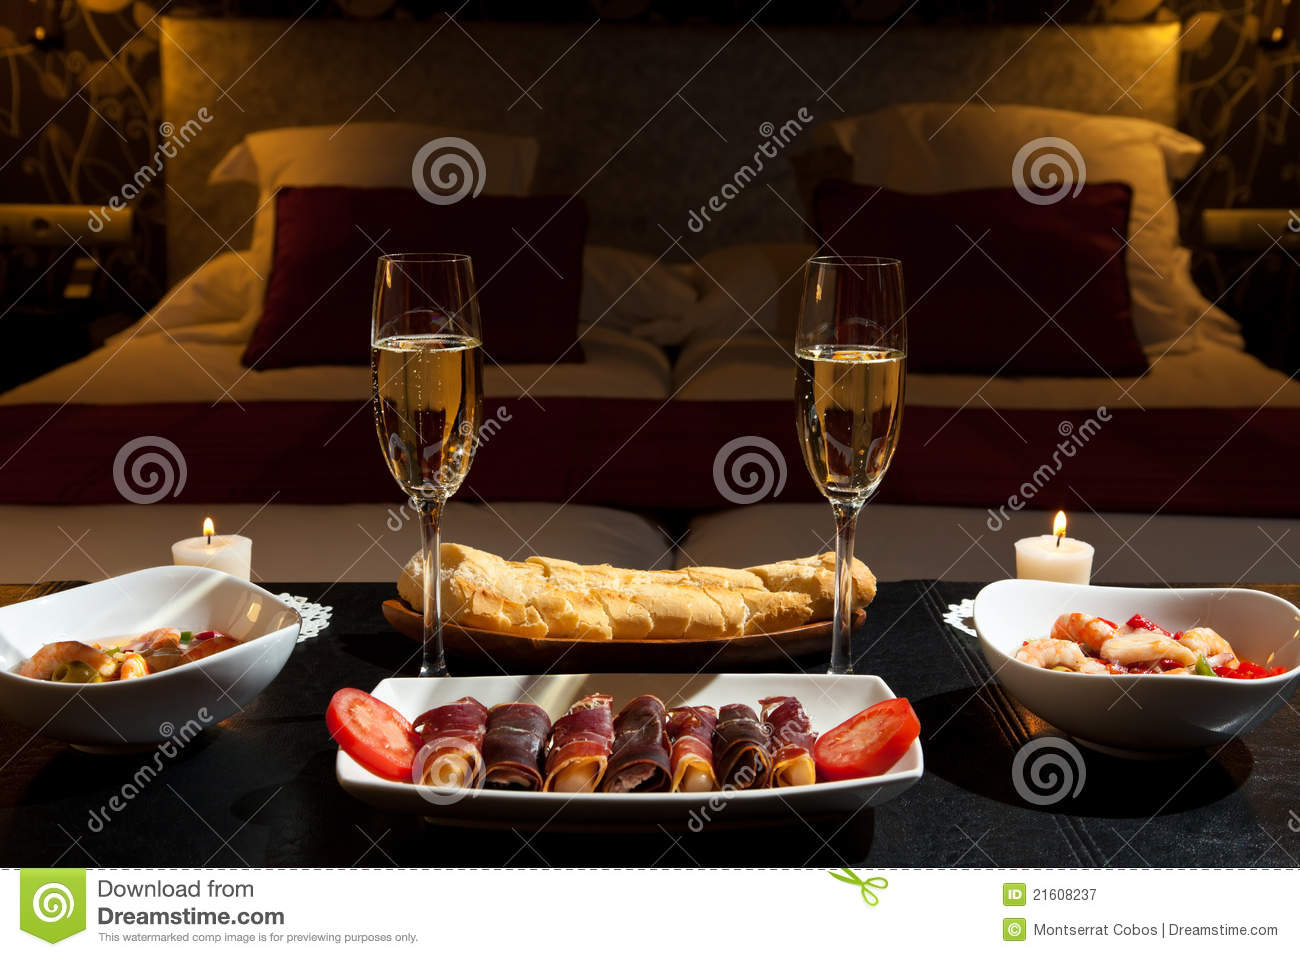 Romantic Dinner In A Luxurious Hotel Stock Image Image Of Bedding Business 21608237